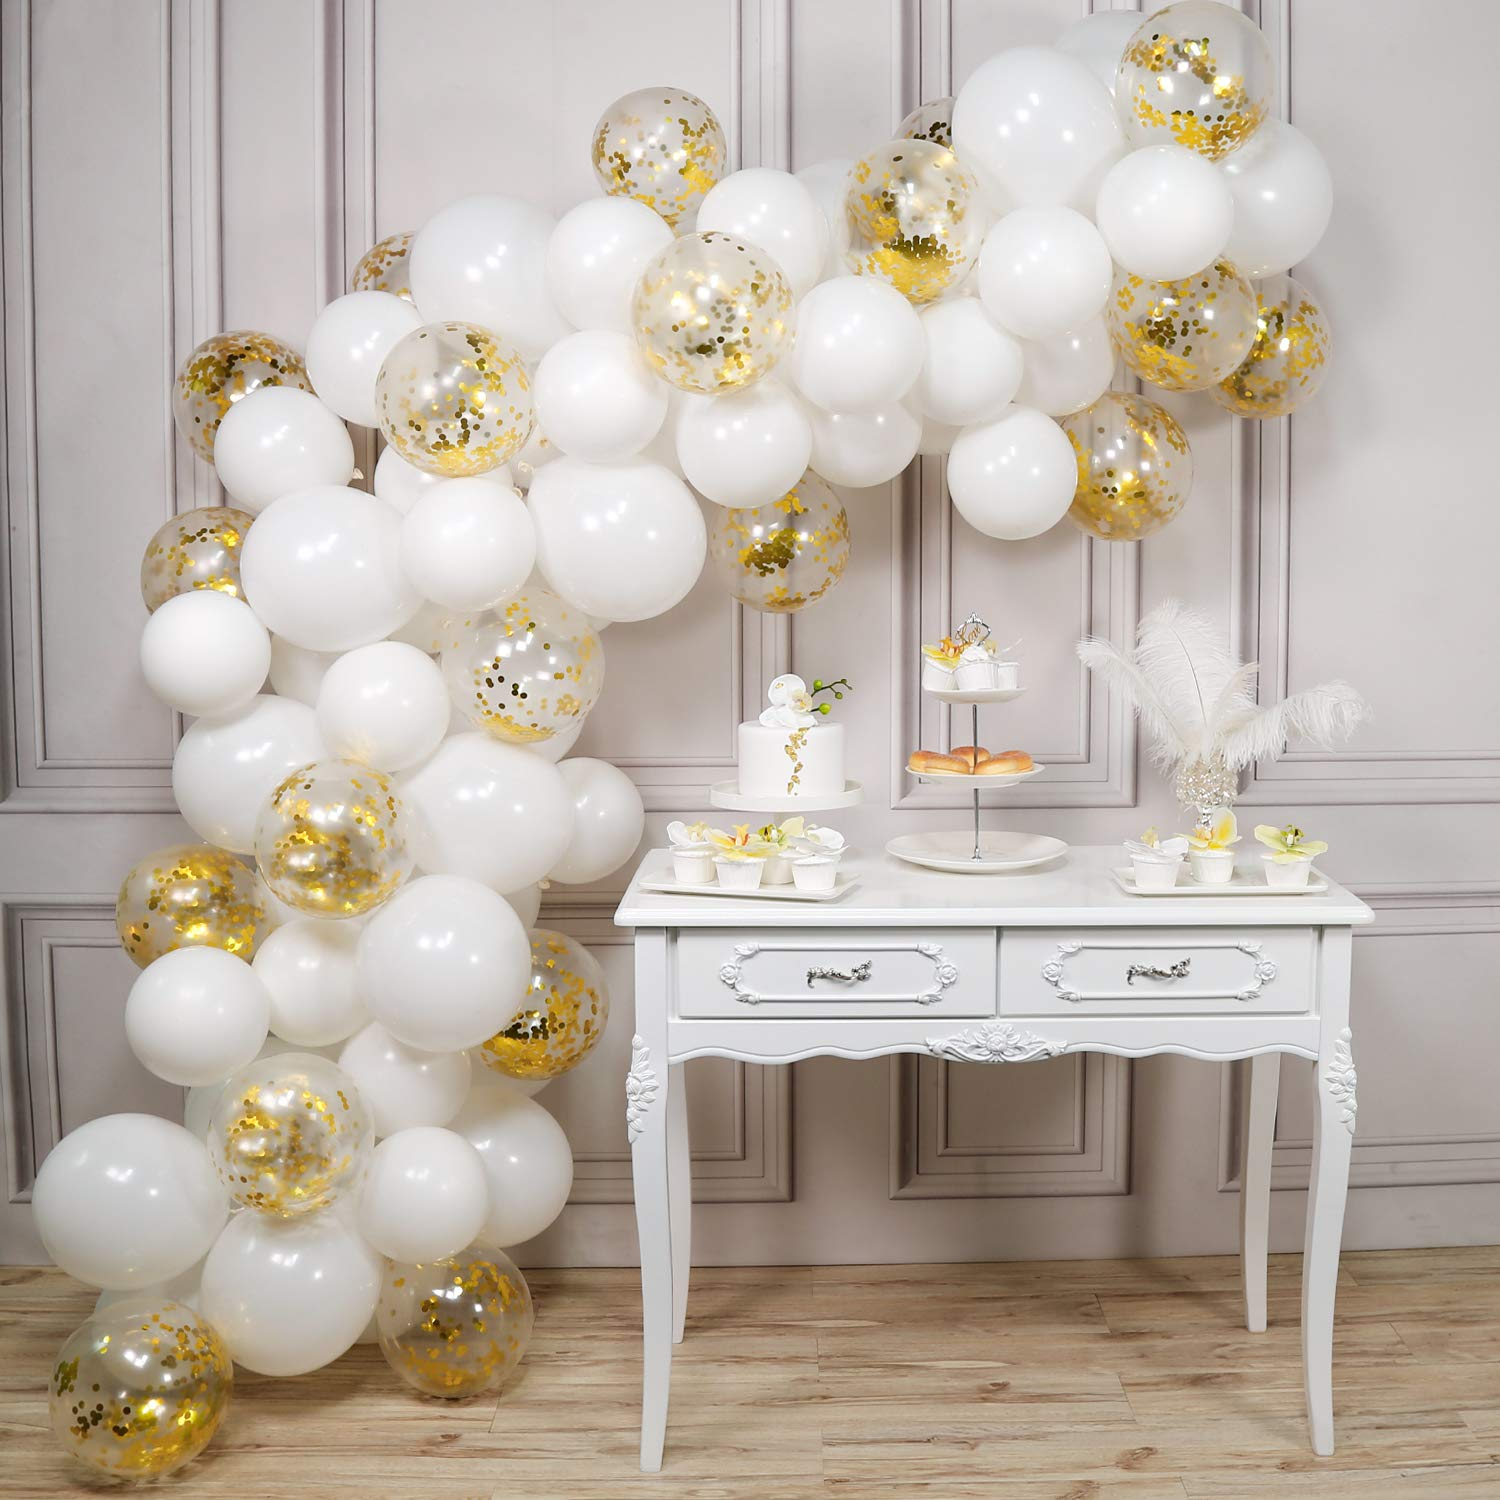 PartyWoo White and Gold Balloons, 100 pcs 12 In White Balloons and Gold Confetti Balloons, White and Gold Balloon Garland for White and Gold Baby Shower Decorations, White and Gold Wedding Decorations